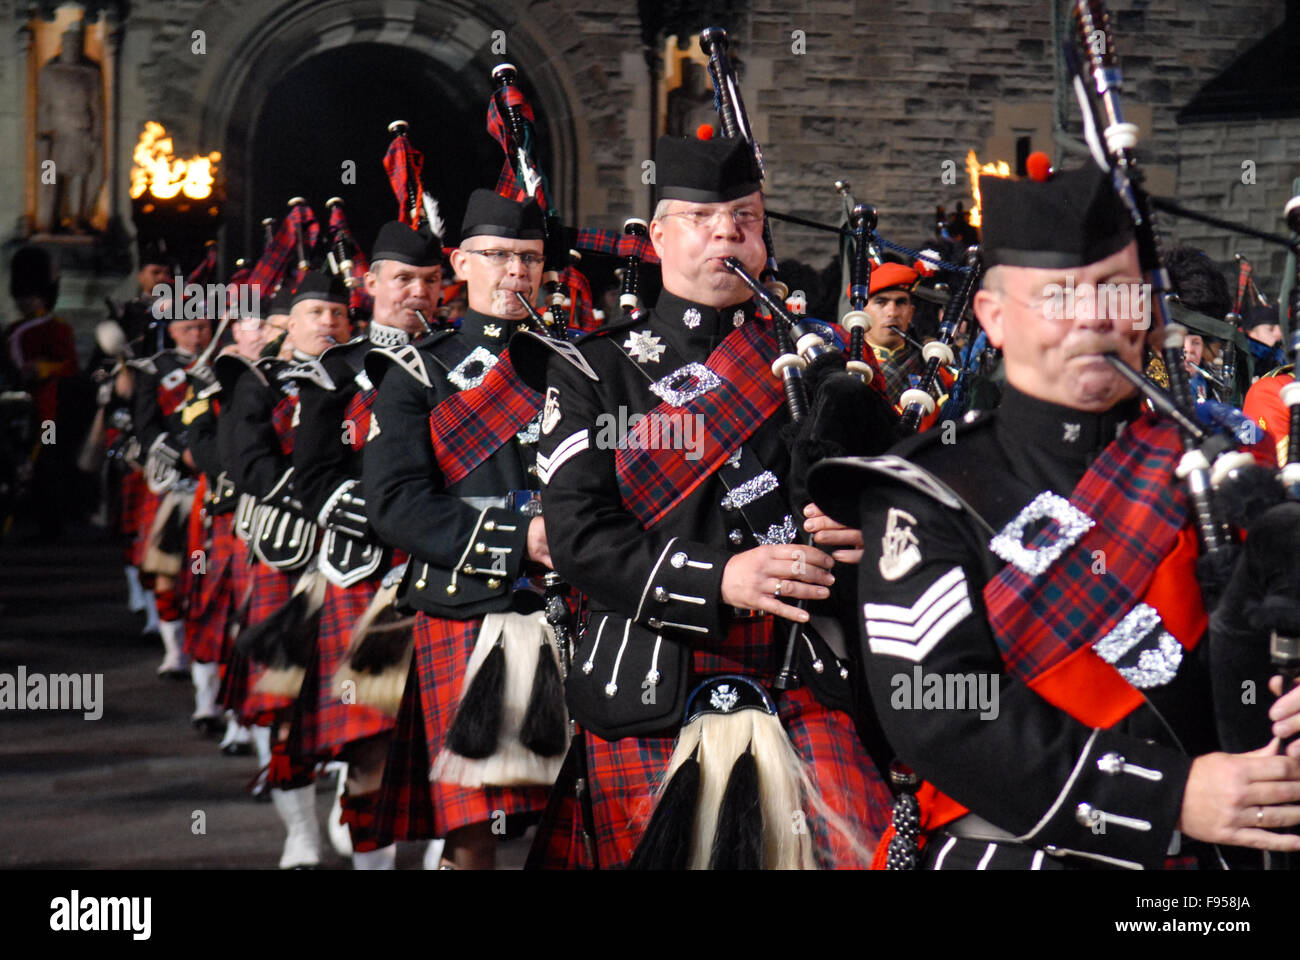 Massed pipes and drums at the 2011 Edinburgh Military Tattoo in Edinburgh, Scotland. Stock Photo